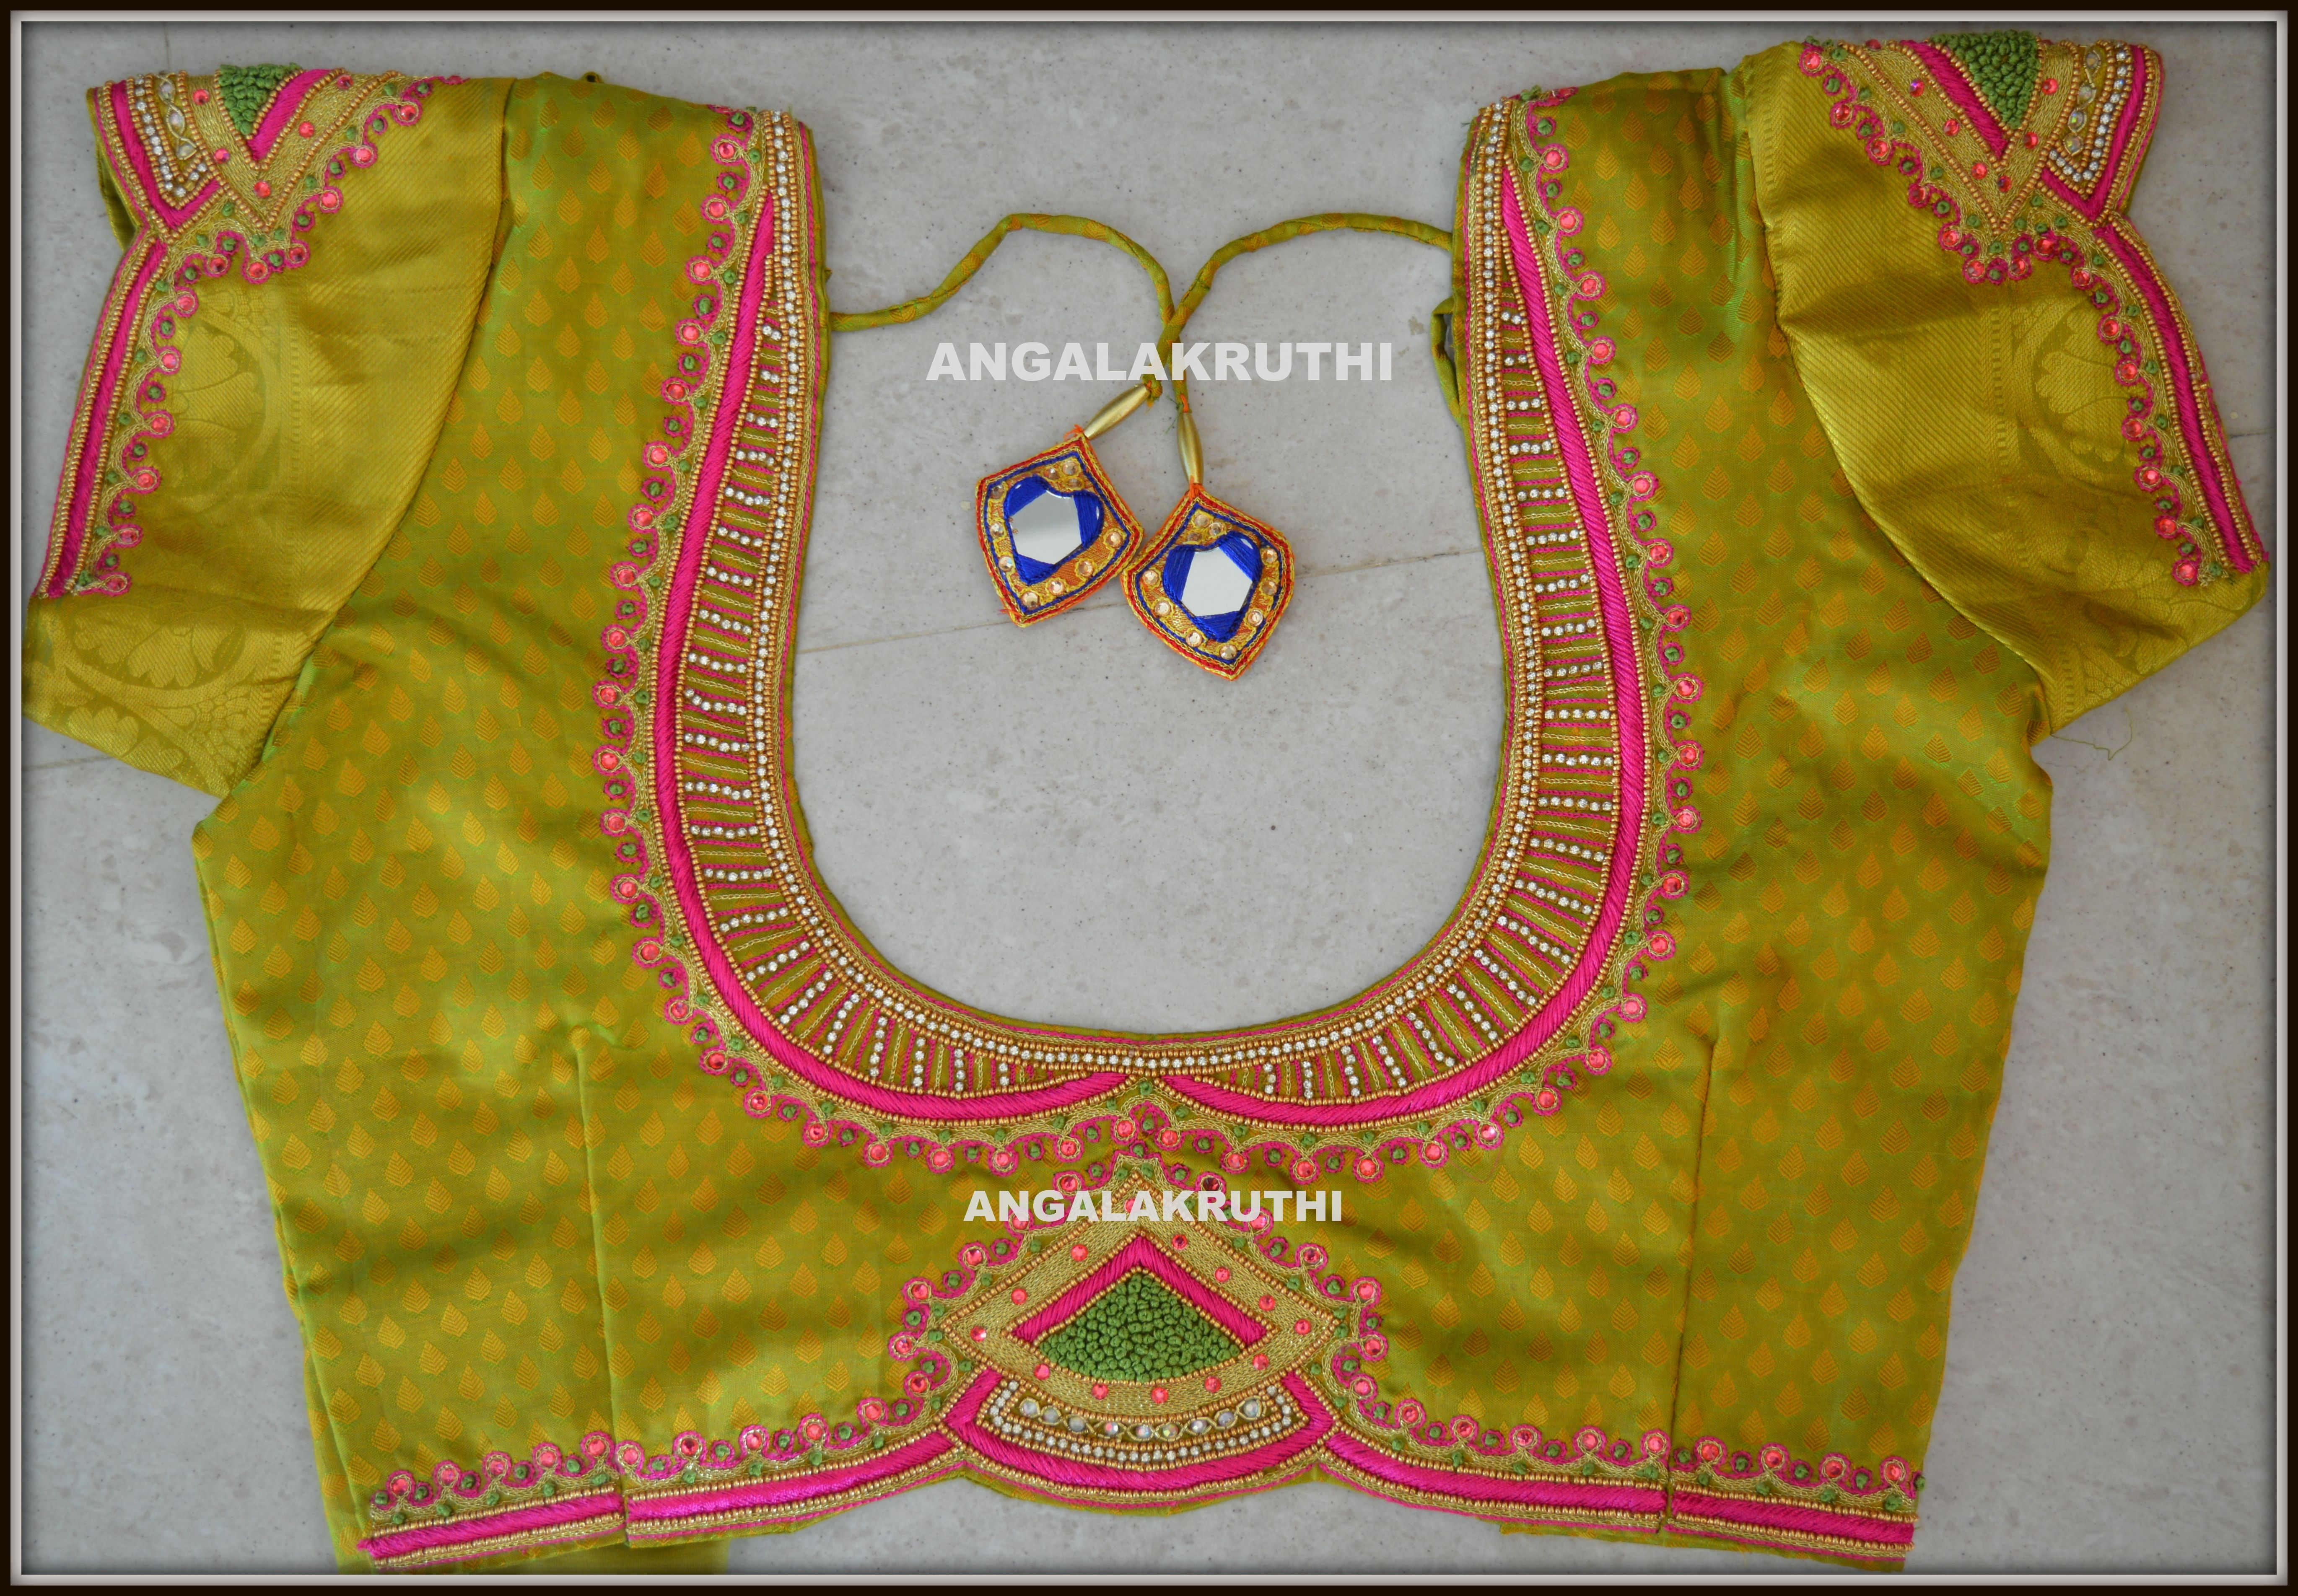 Blouse Hand Embroidery Neck Designs By Angalakruthi Blouse Hand Designs Embroidery Blouse Designs Simple Blouse Designs,All Seeing Eye Pyramid Tattoo Designs